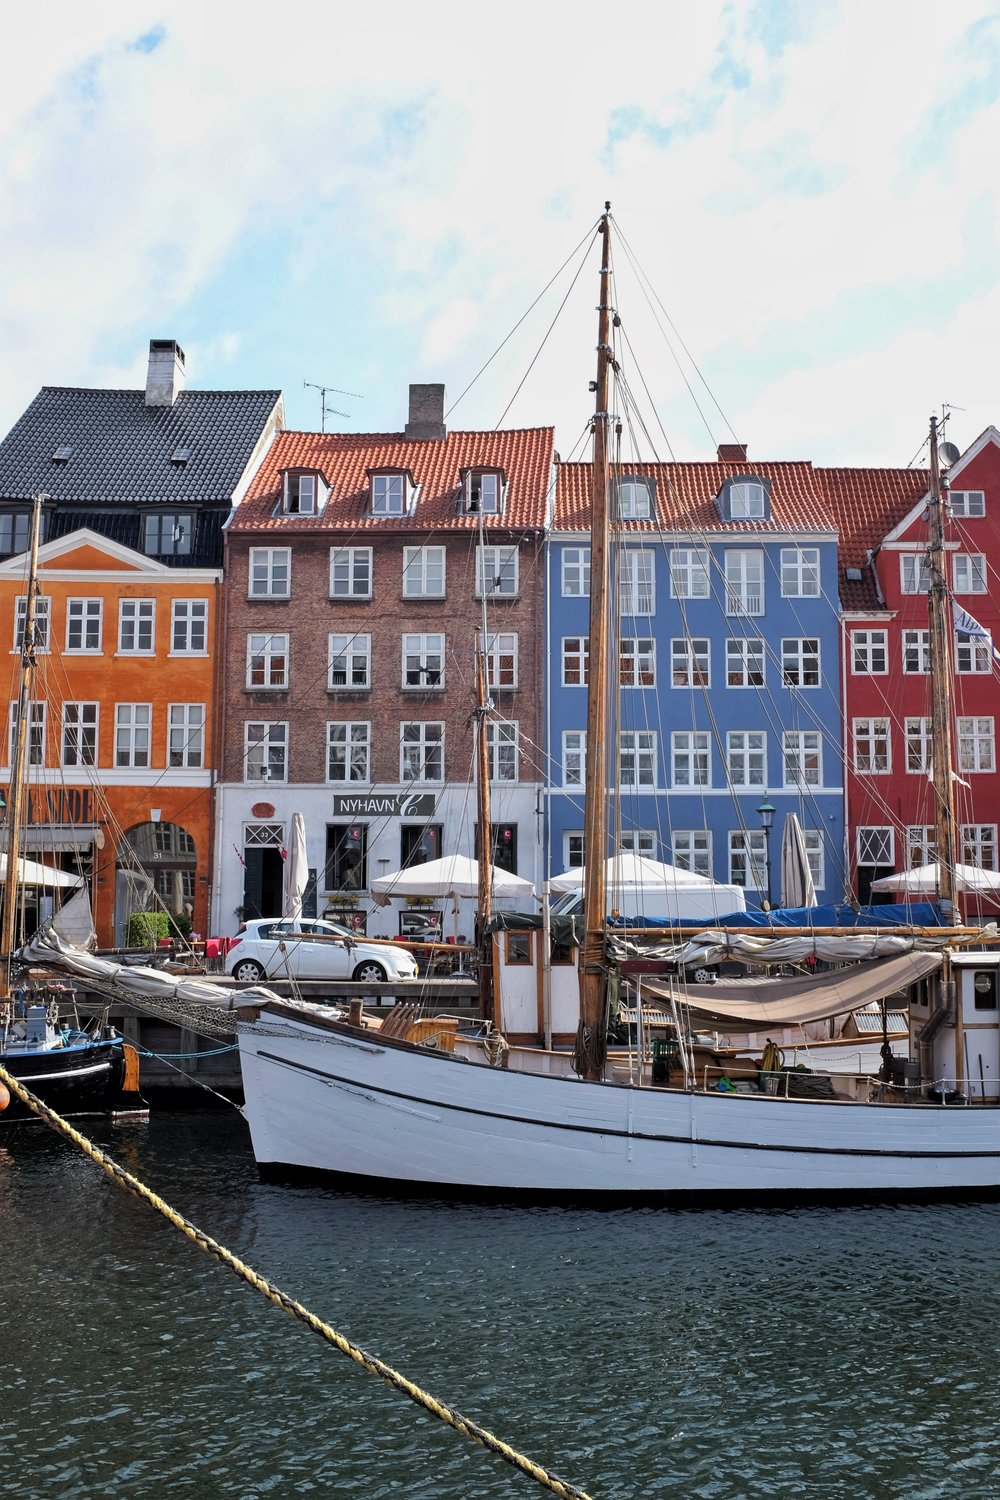 The signature shot of the iconic Nyhavn.